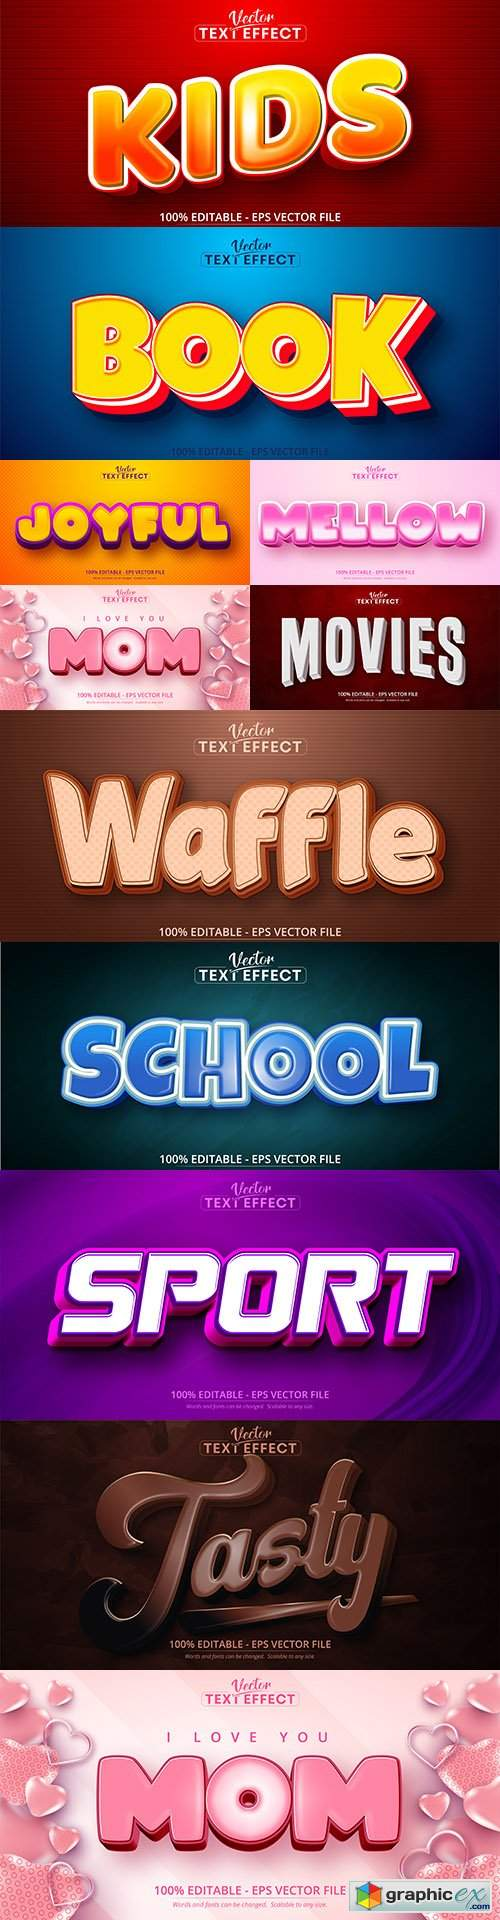 Editable font and 3d effect text design collection illustration 74